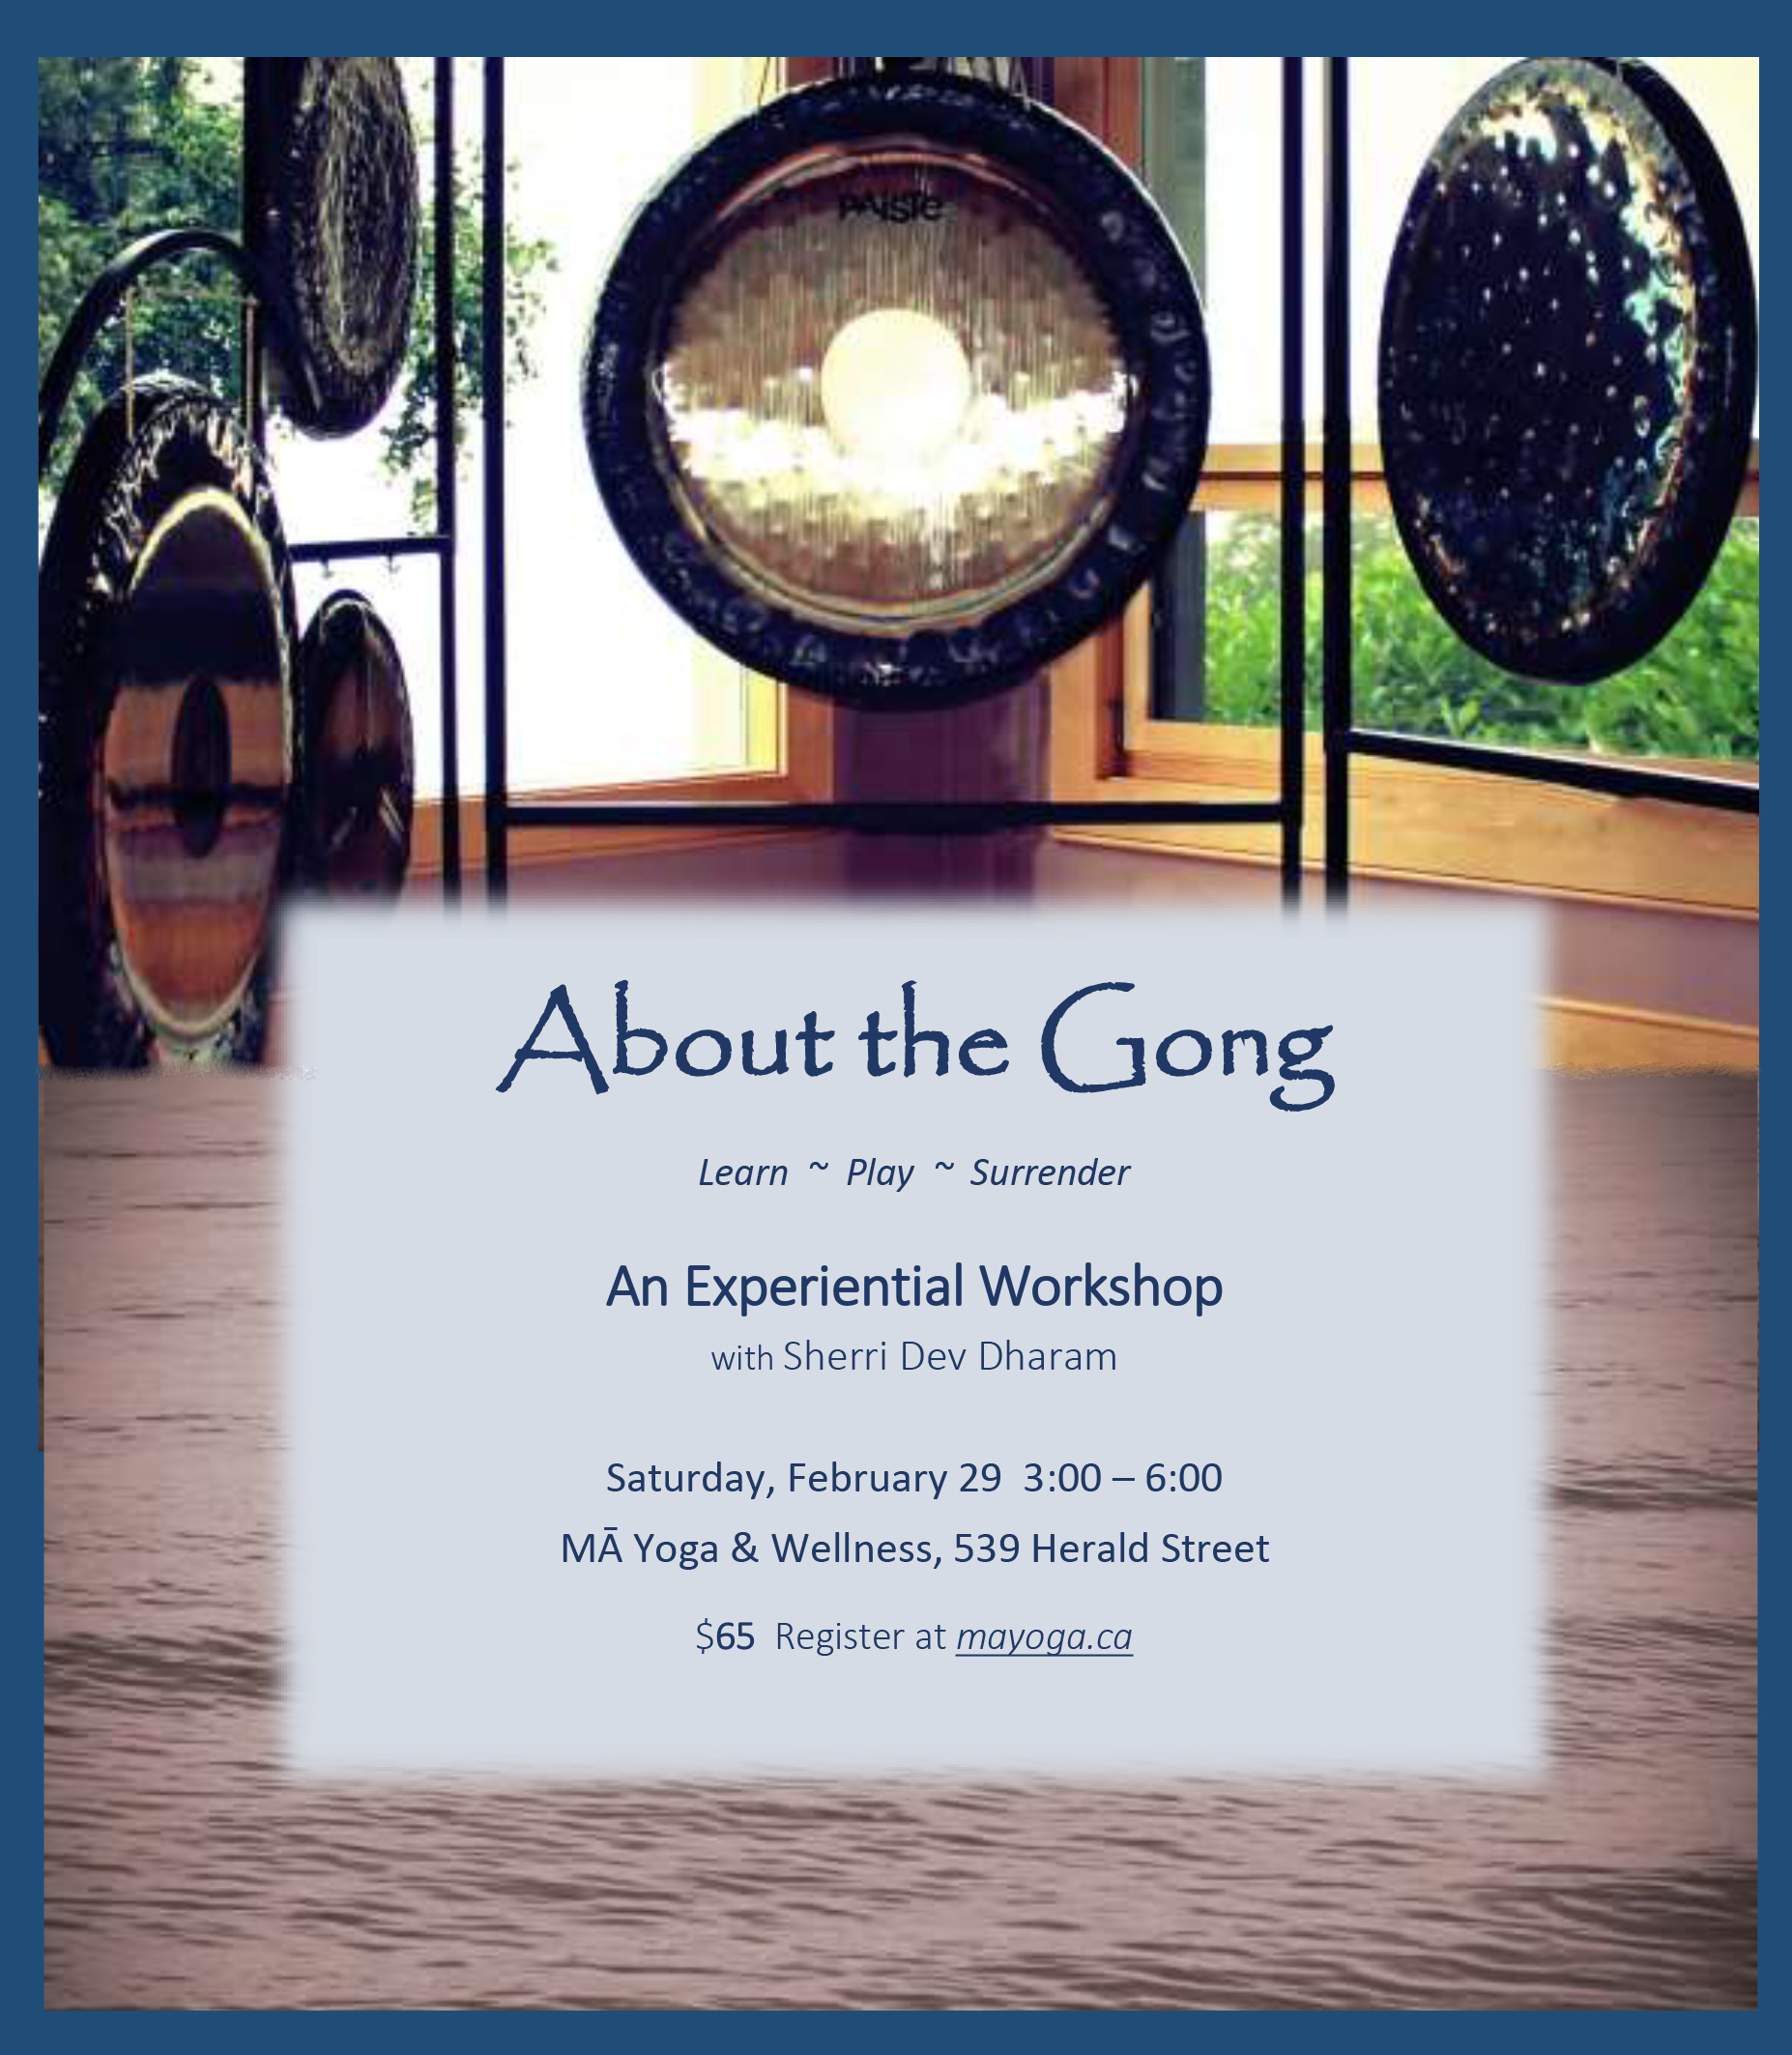 About the Gong Workshop